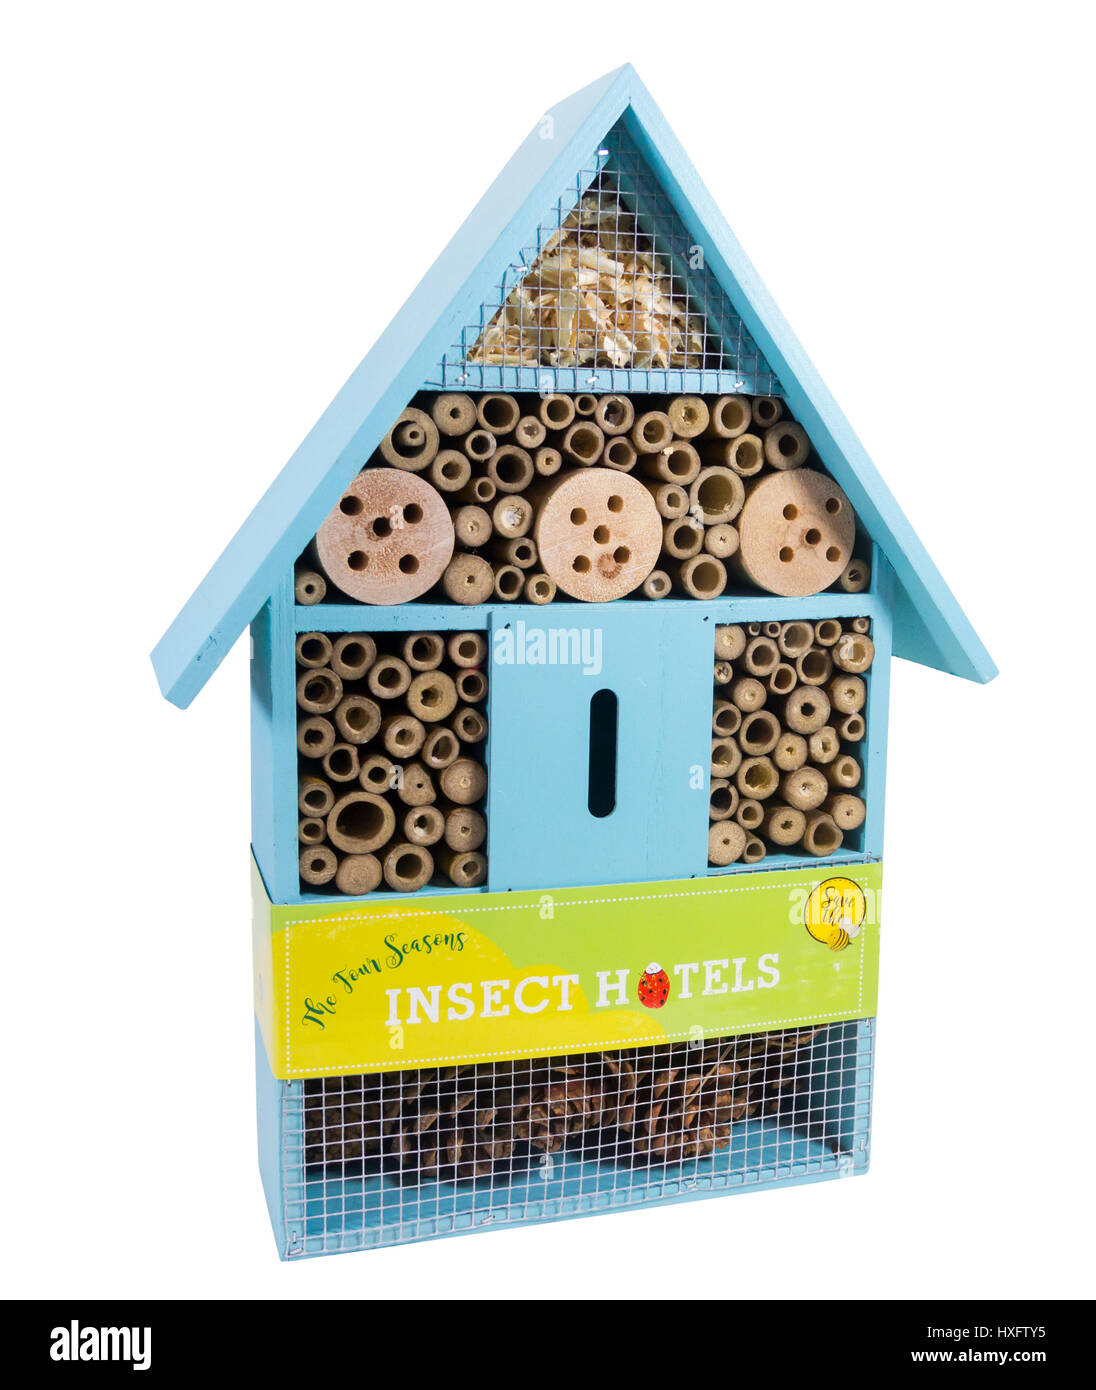 The Four Seasons Insect hotel by Garden Bazaar GB in its retail packaging. - Stock Image